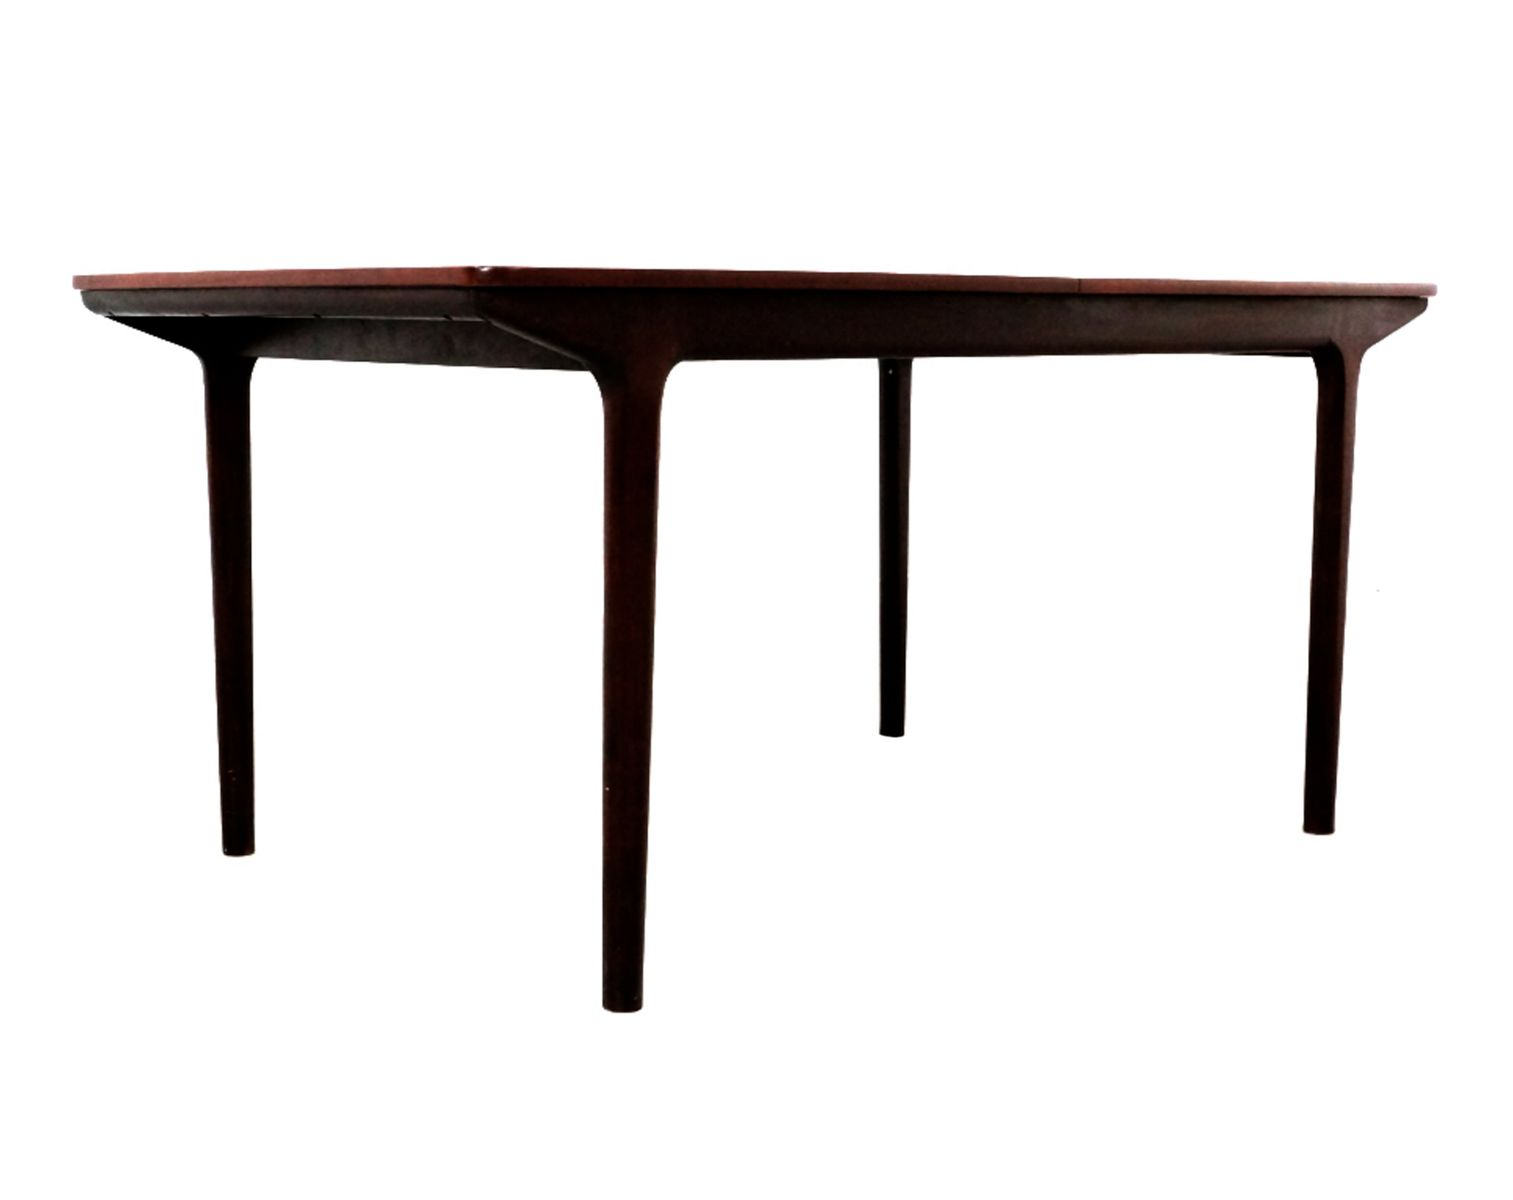 Table de salle manger 12 places mid century en for Table salle manger 12 places